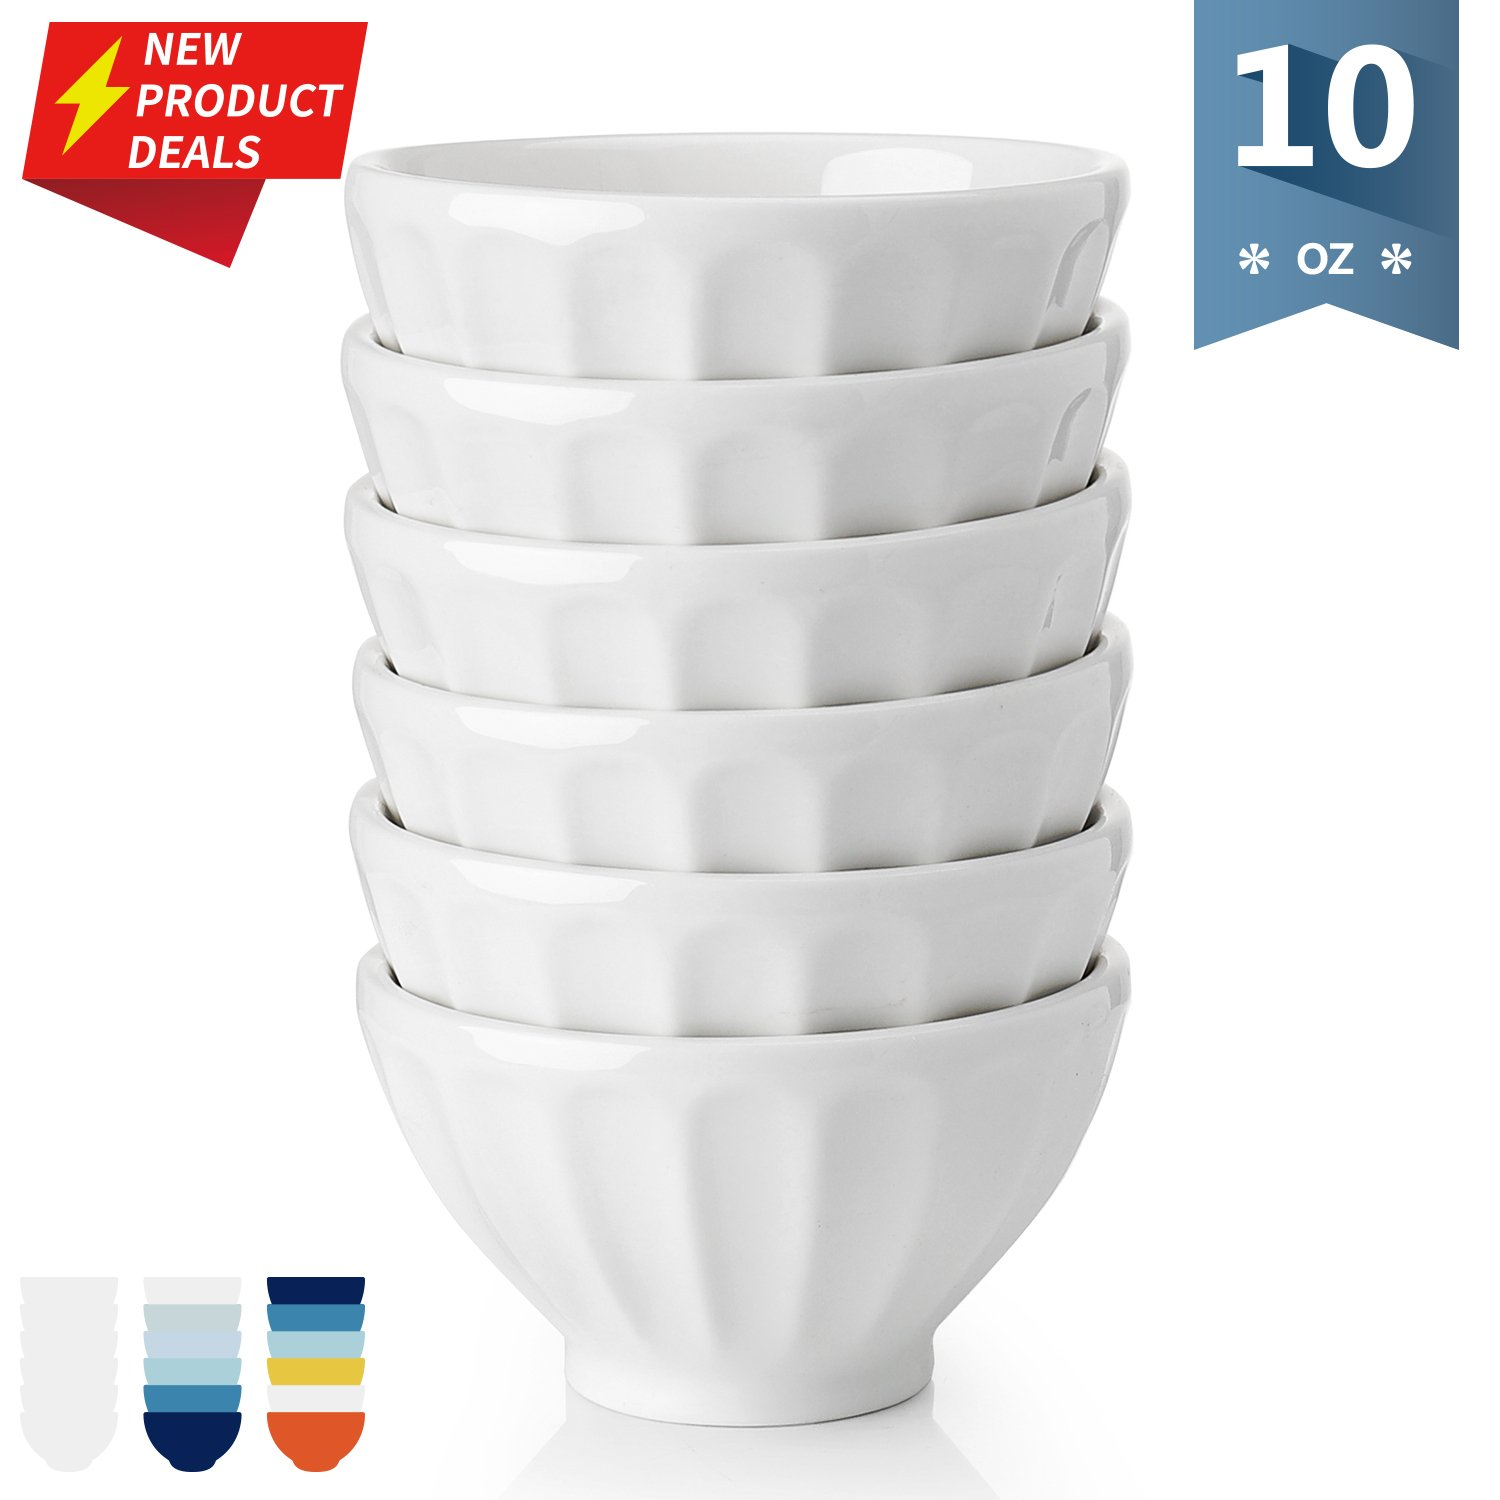 [Flash Deal]Sweese 1126 Porcelain Fluted Small Bowls - 10 Ounce for Ice Cream, Dessert, Small Side Dishes - Set of 6, White